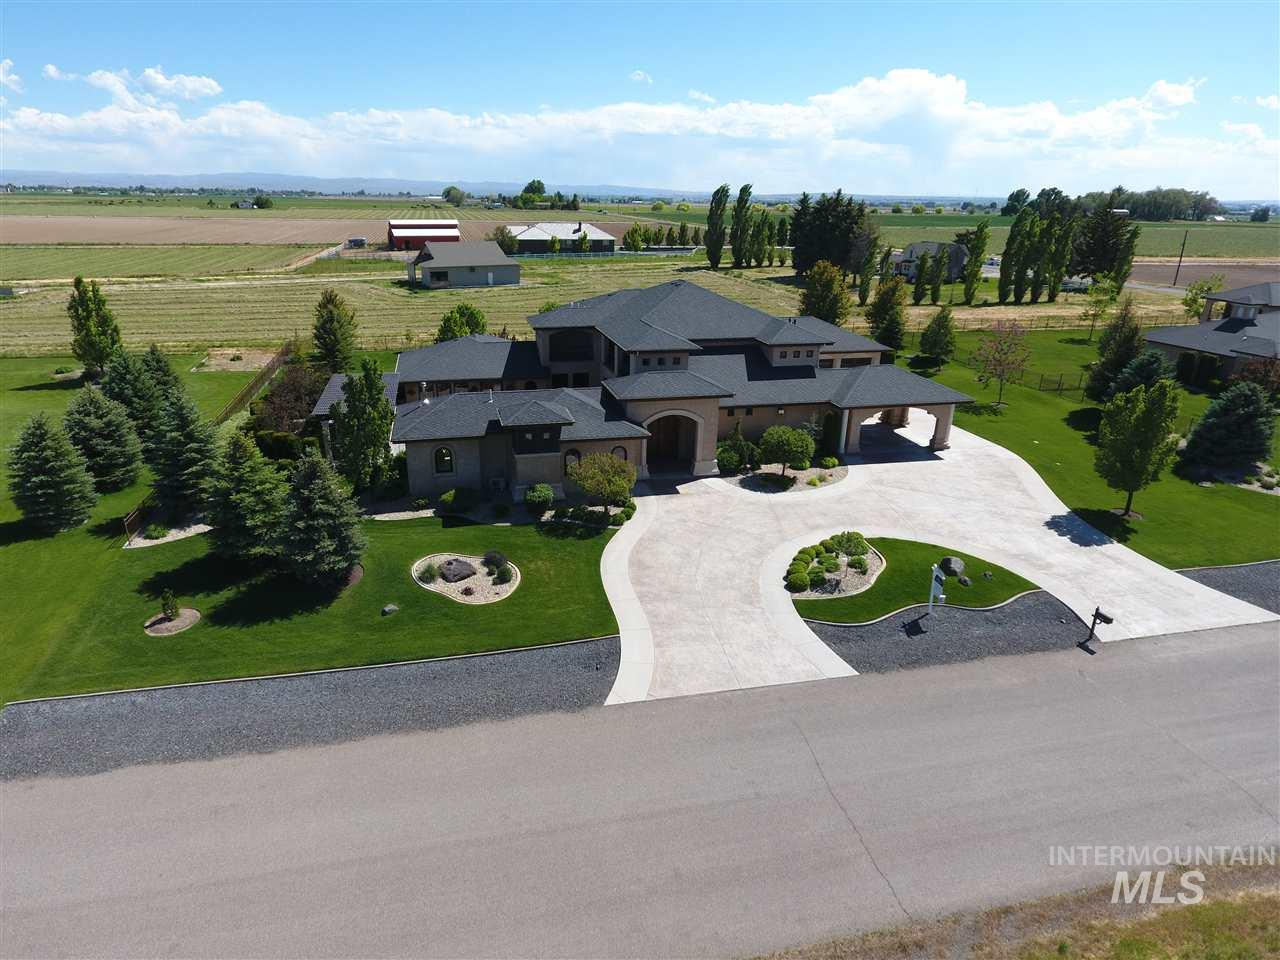 Single Family Home for Sale at 3407 Moonlight Drive 3407 Moonlight Drive Kimberly, Idaho 83341